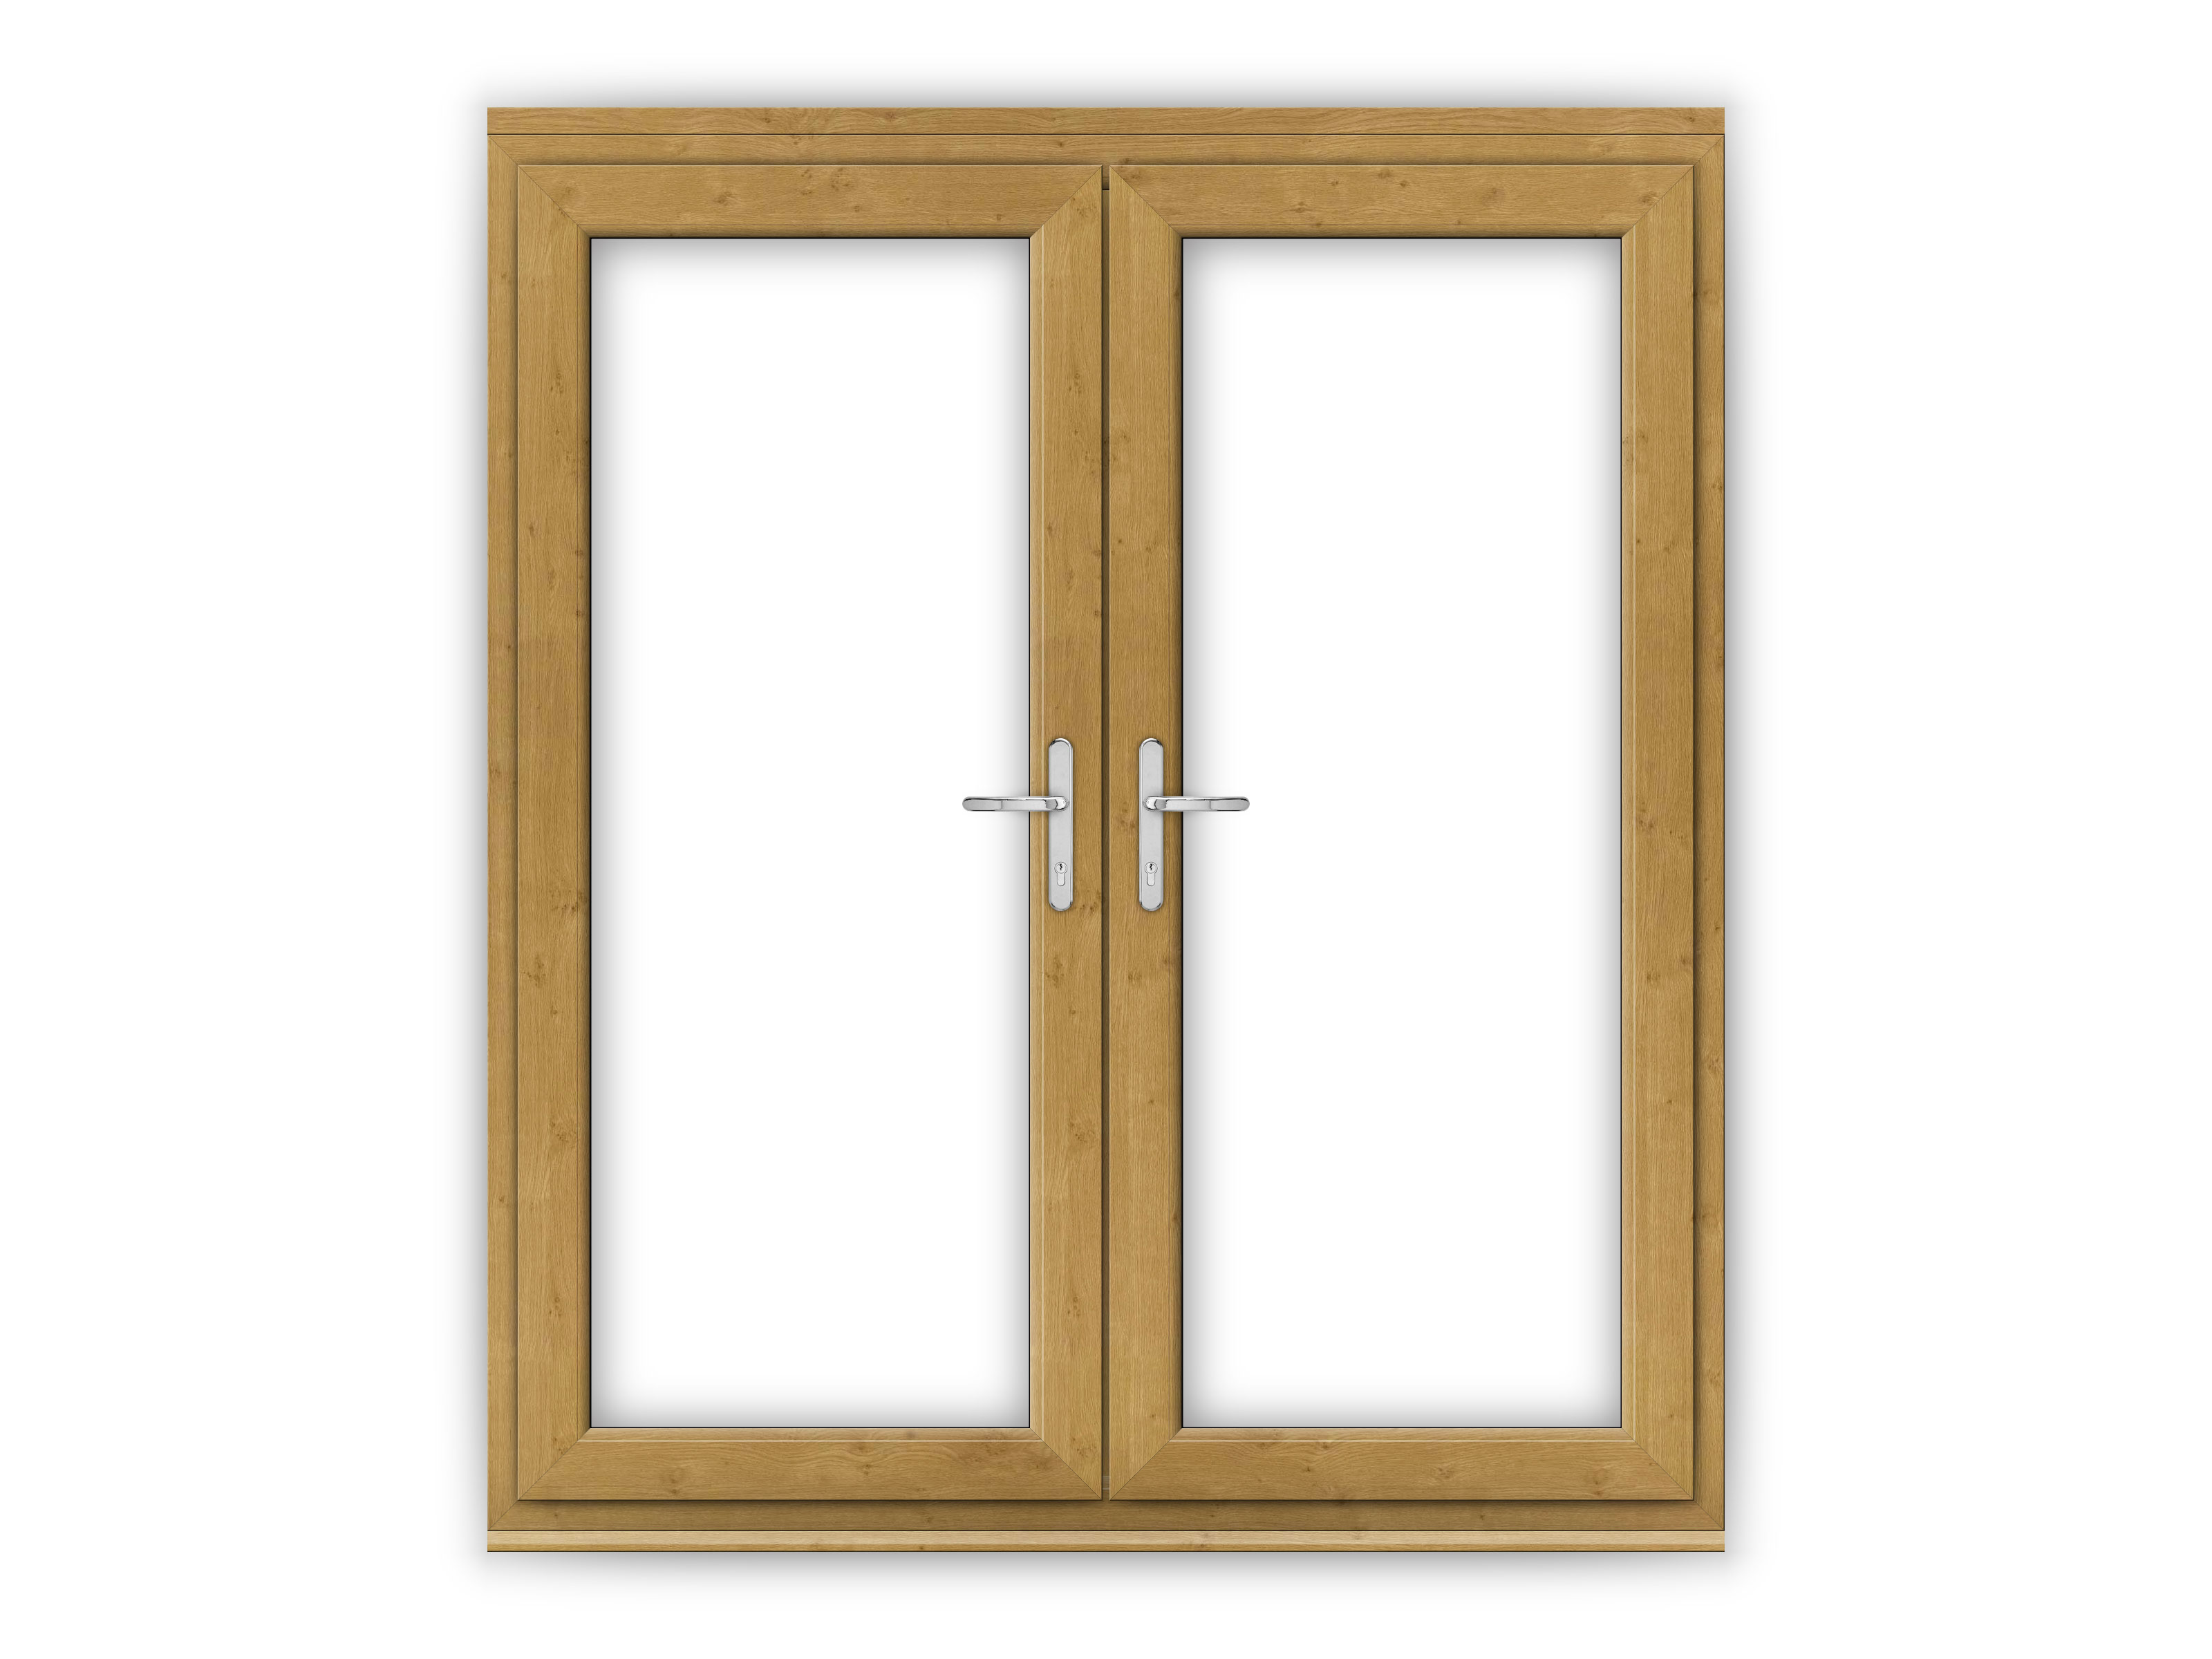 6ft irish oak upvc french doors flying doors for Upvc french doors 1790 x 2090mm